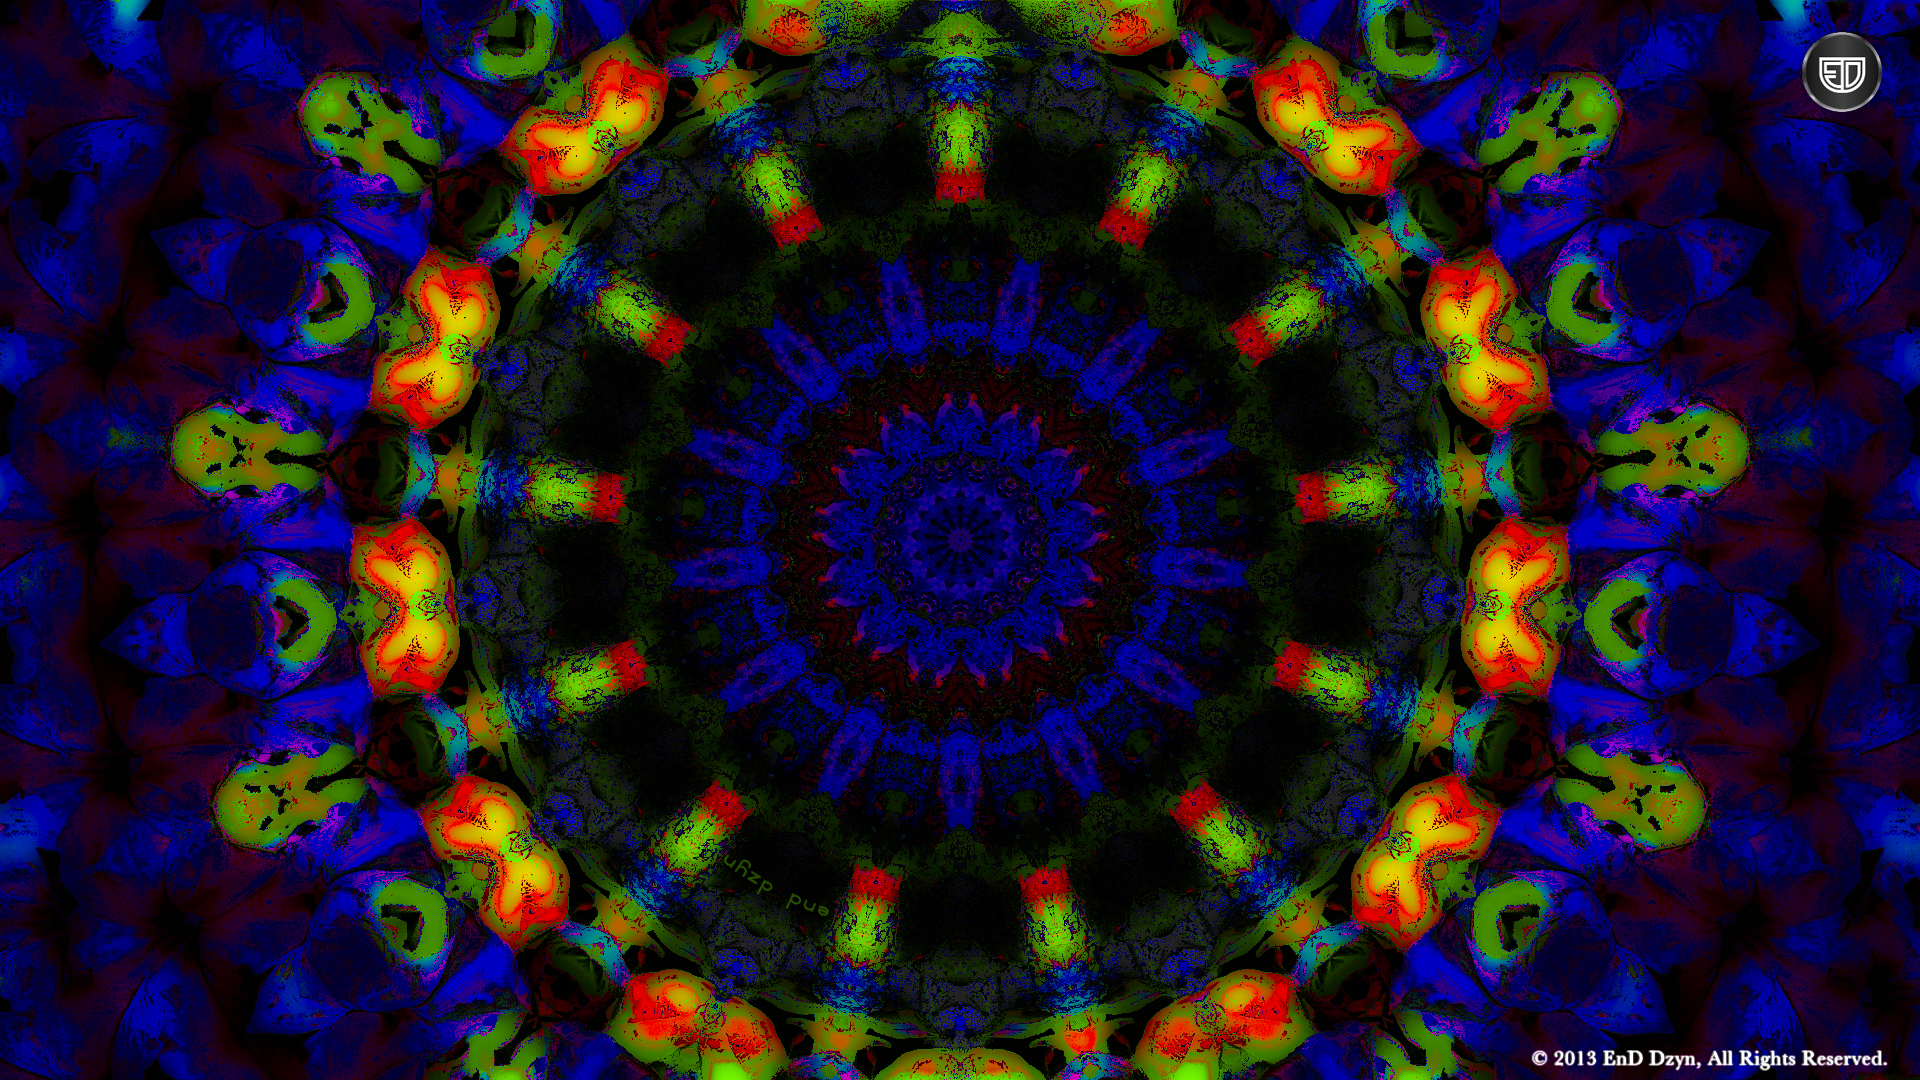 Sokilin design wallpapers trippy wallpapers hd - Psychedelic Hd Background Wallpaper Blue Orange Trippy 3d